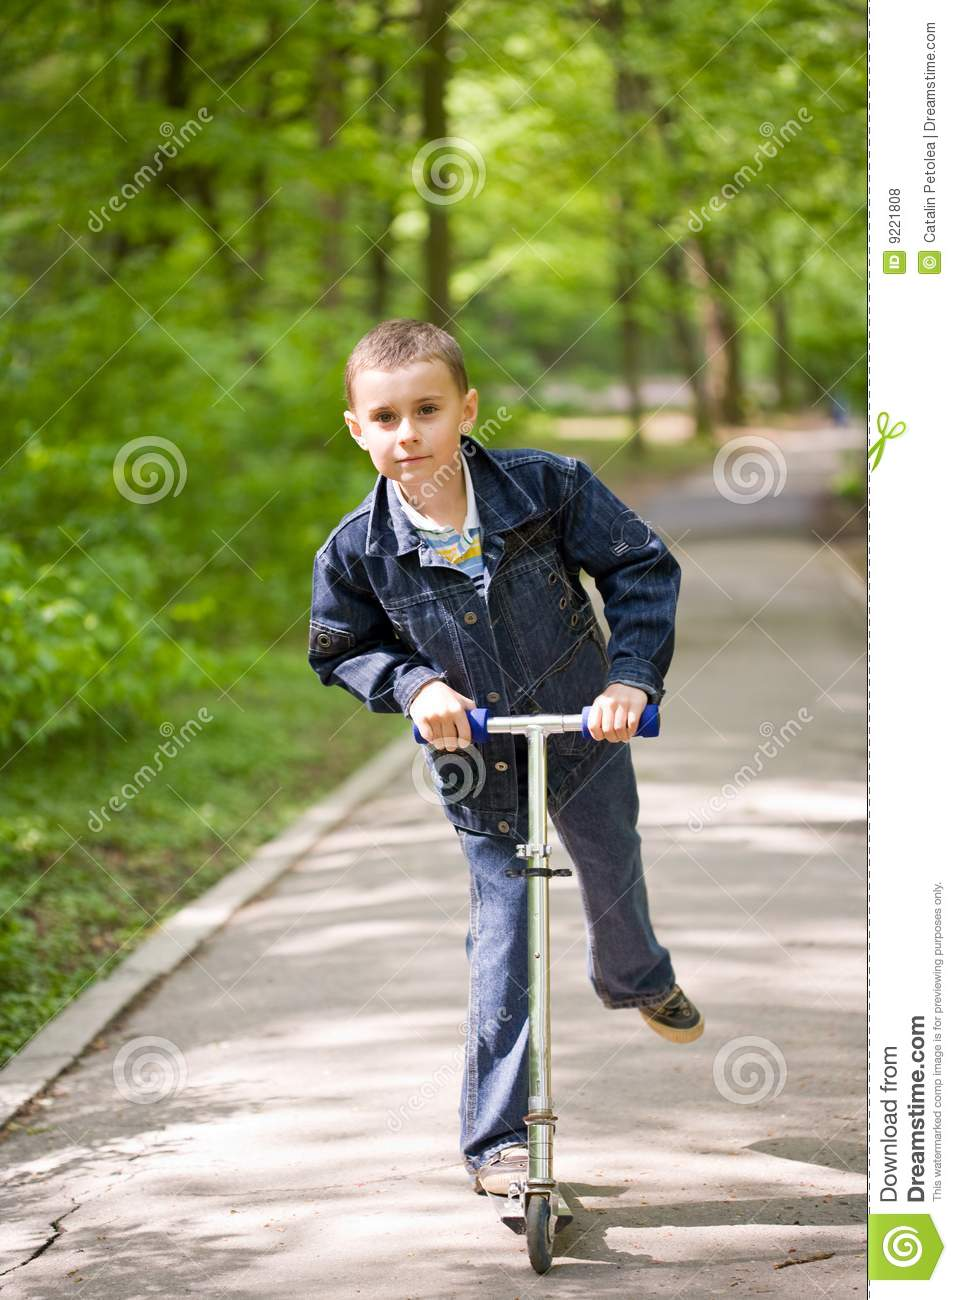 Cute Kid On Scooter Stock Photo  Image Of Childhood  Recreation